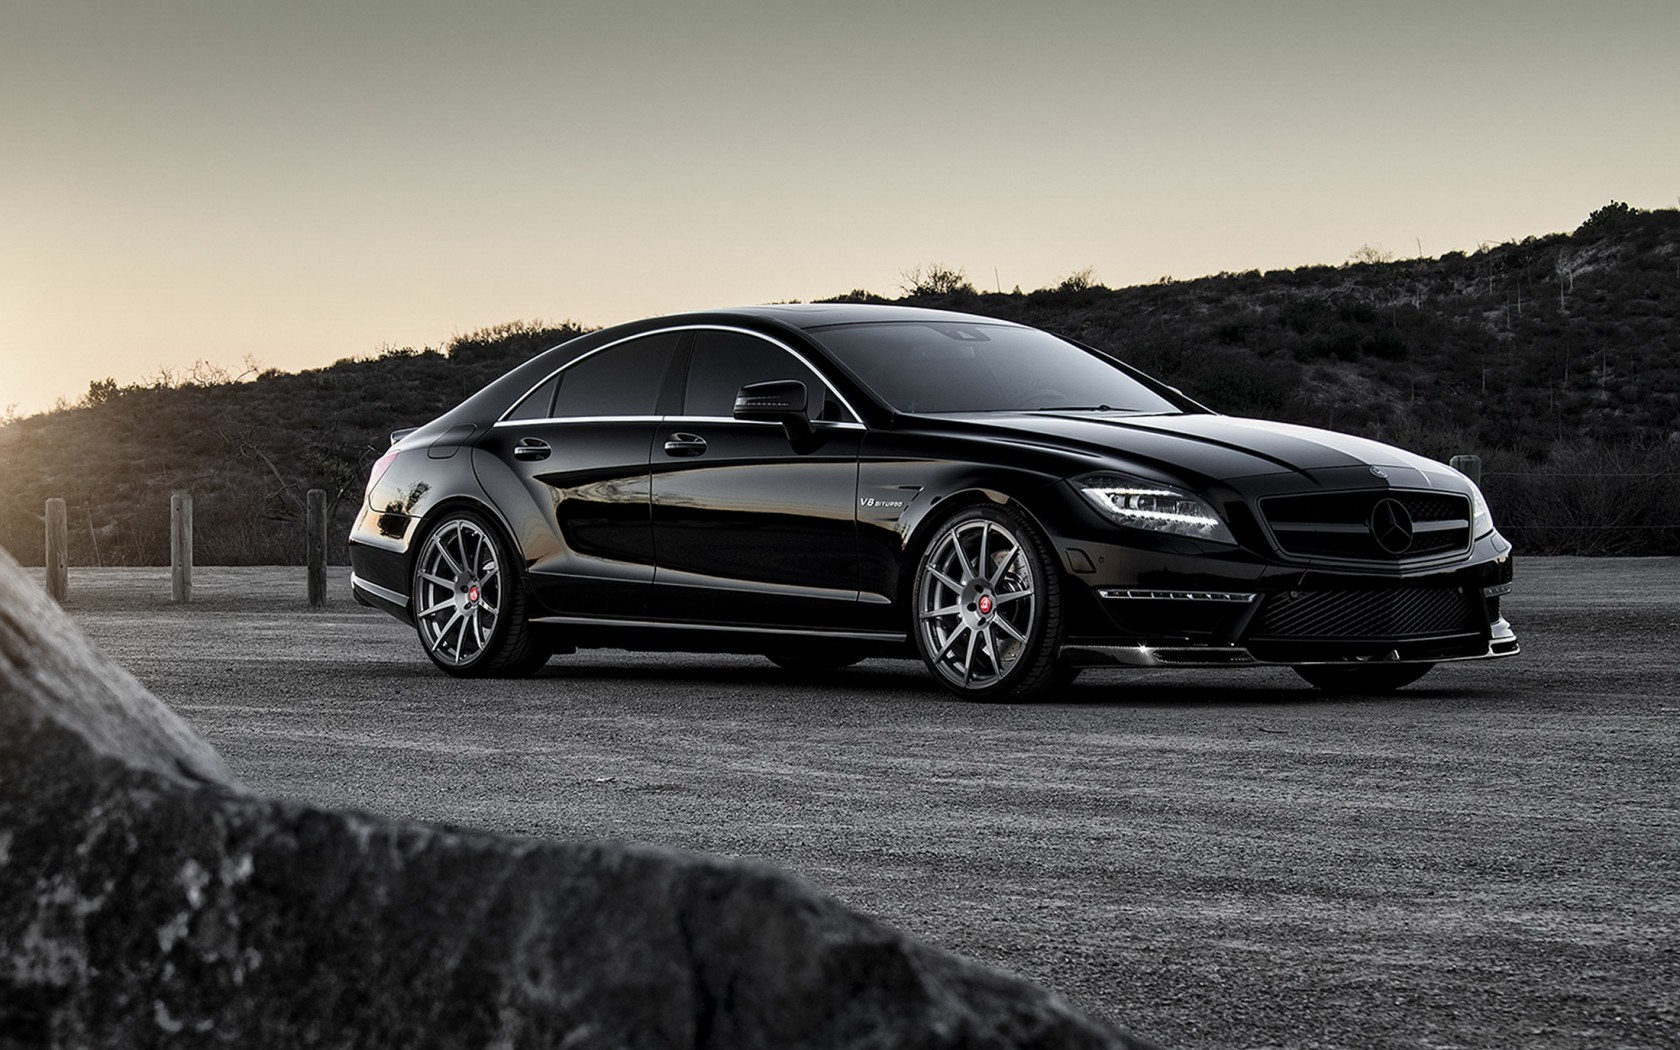 Mercedes-Benz CLS 63 AMG Tuning